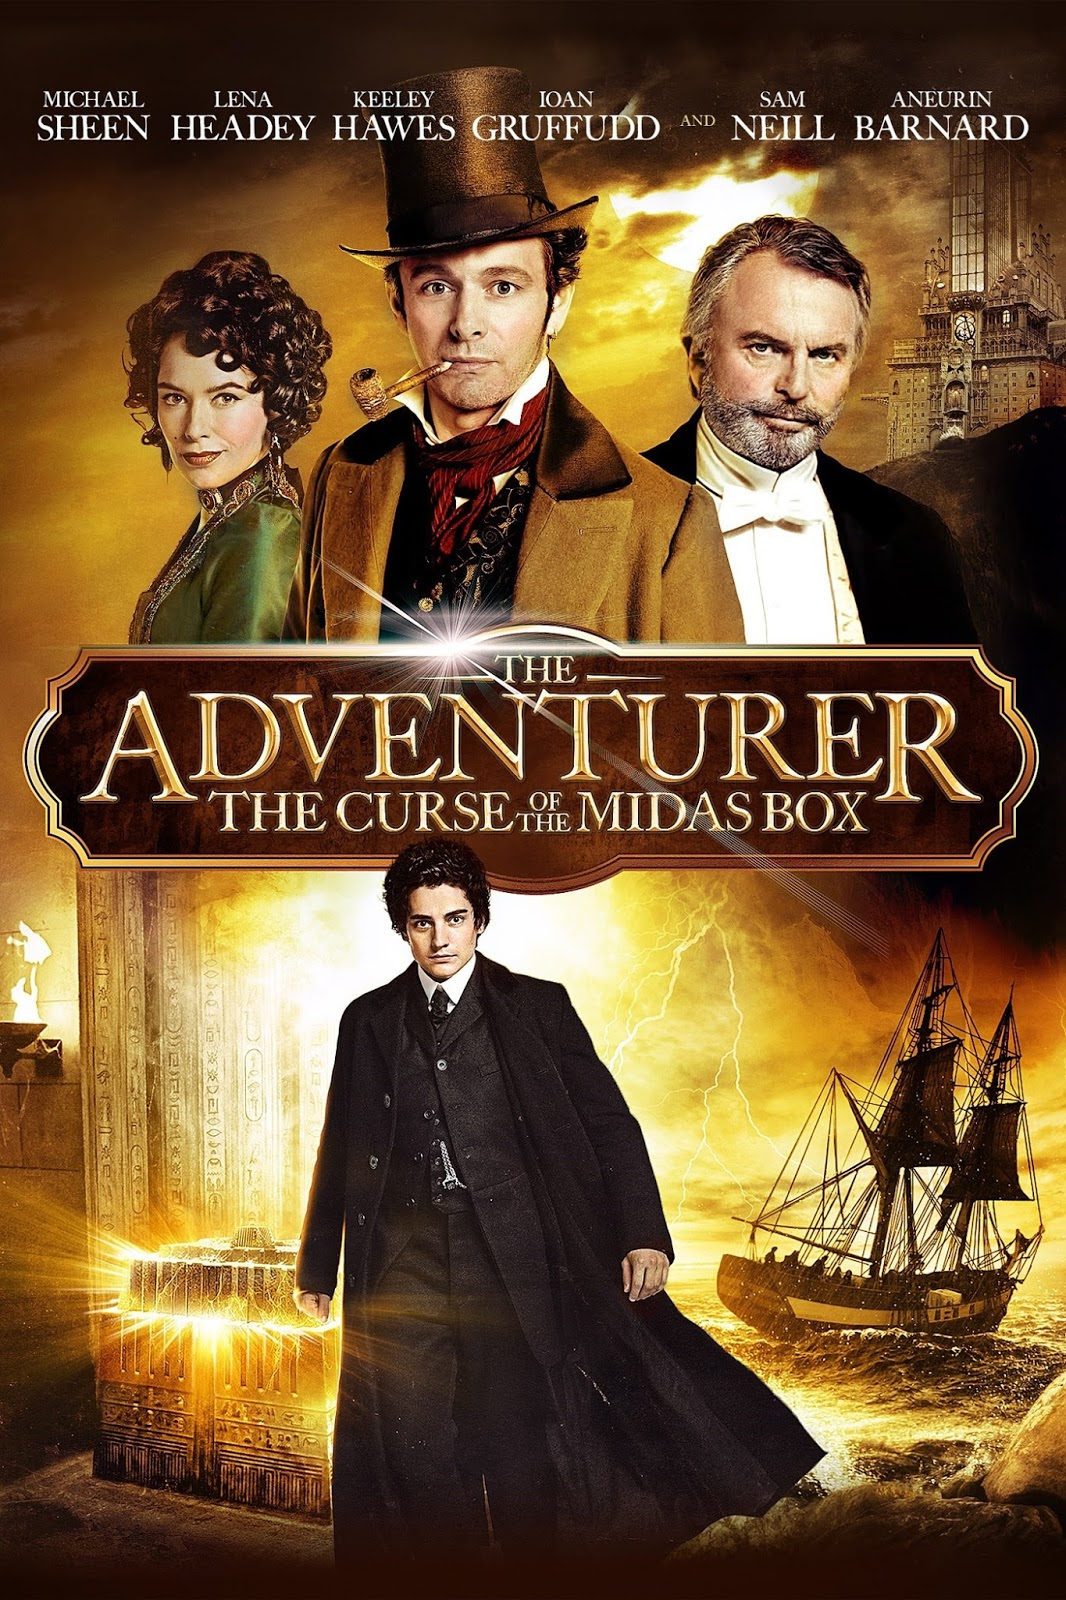 The Adventurer: The Curse of the Midas Box 2014 - Full (HD)